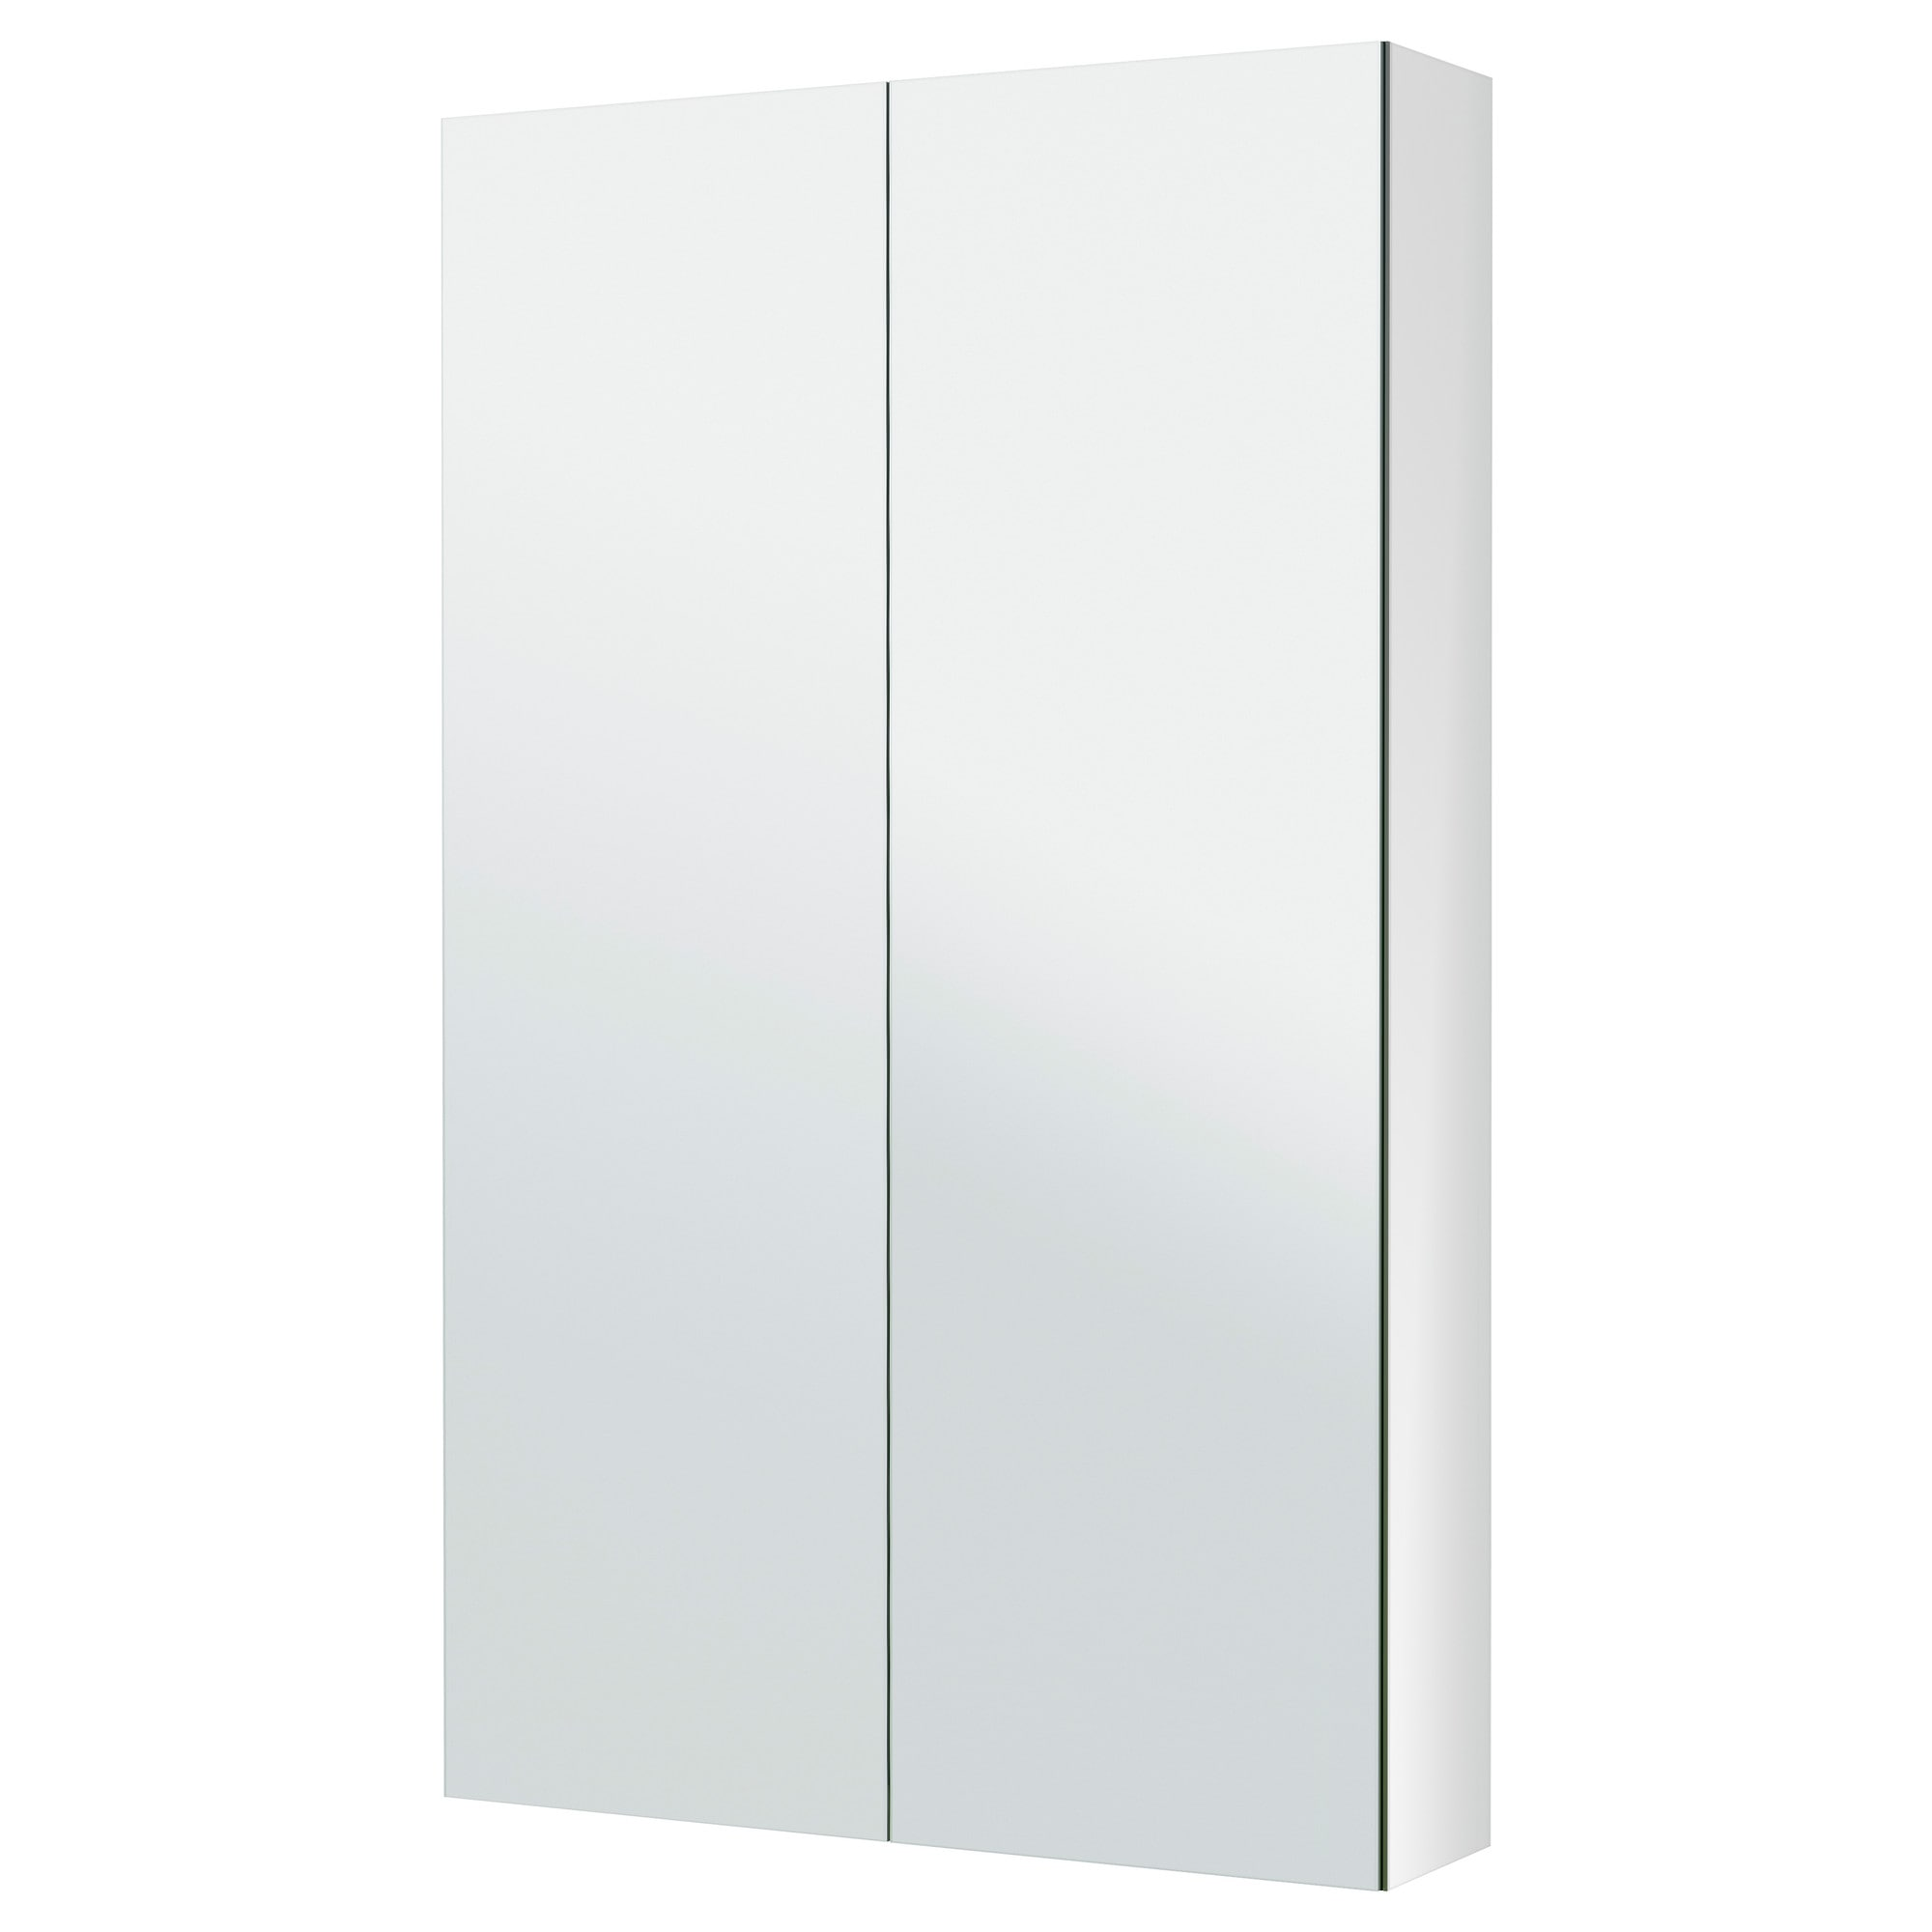 Bathroom mirror cabinet - Bathroom Mirror Cabinet 24